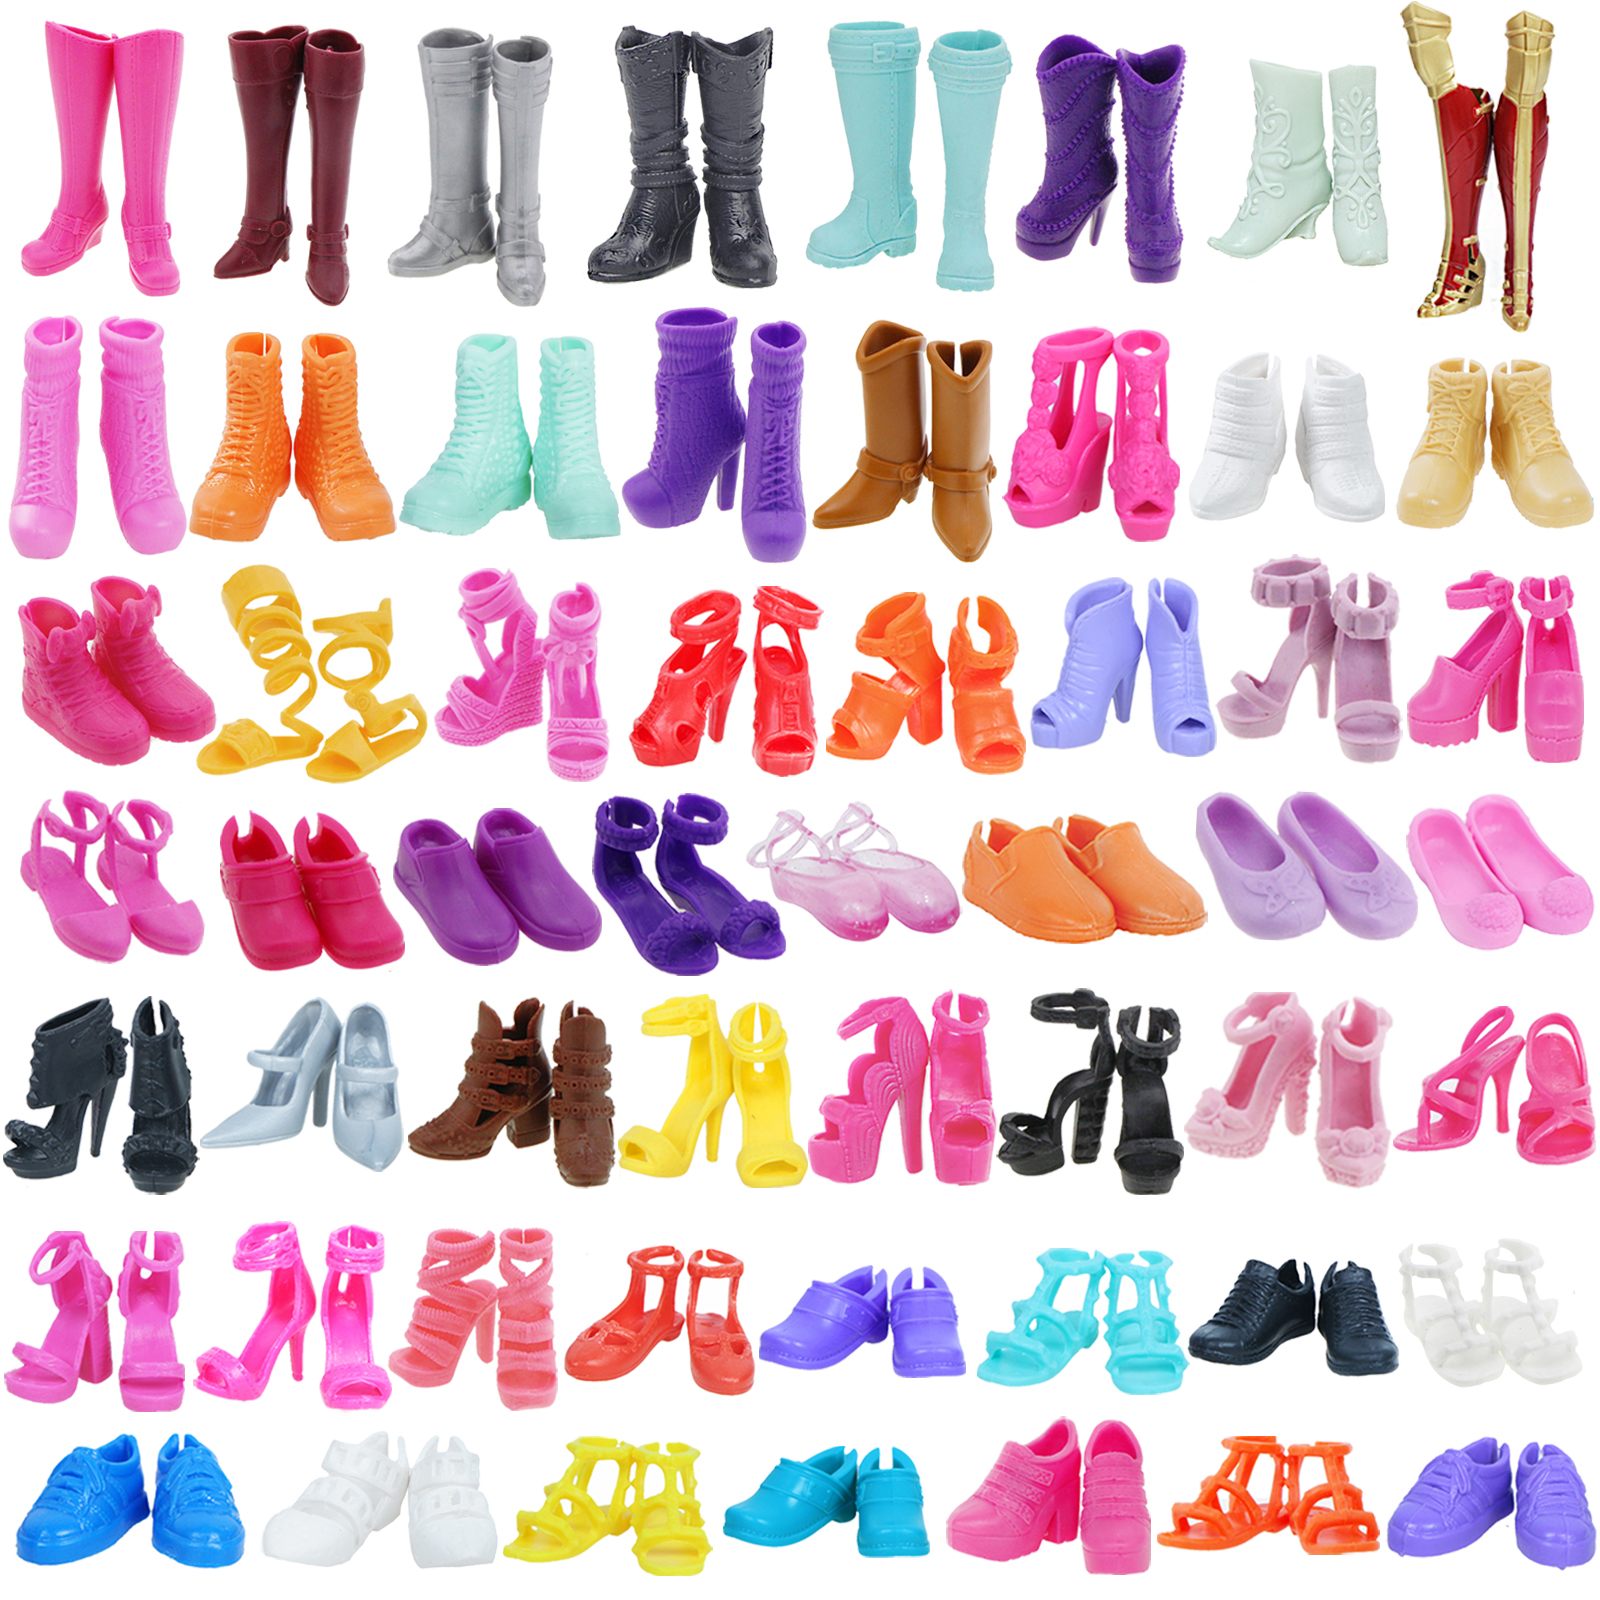 High Heels Flat Shoes Winter Boots Summer Sandals Doll Sport Shoe Daily Casual Sneakers DIY Accessories For Barbie Doll Girl Toy